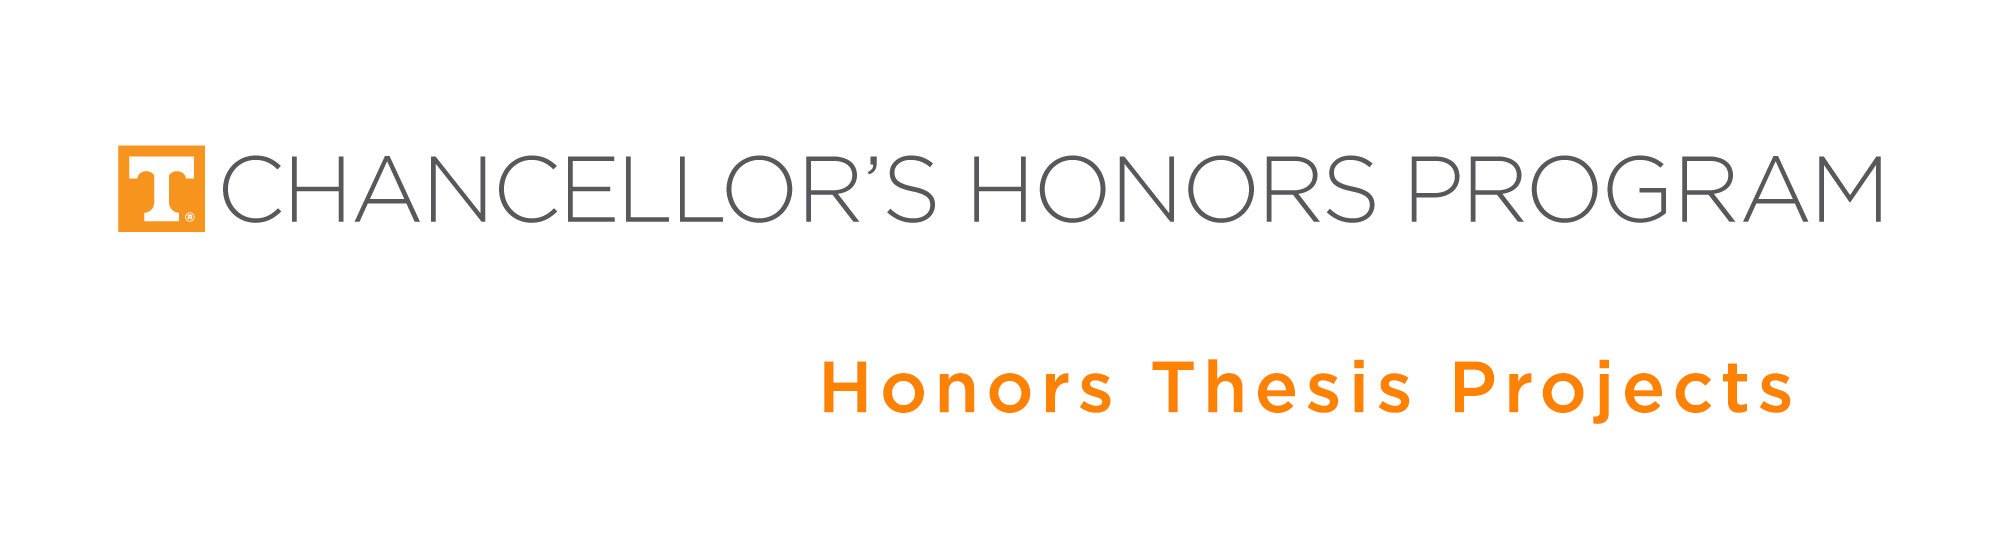 Chancellor's Honors Program Projects | Supervised